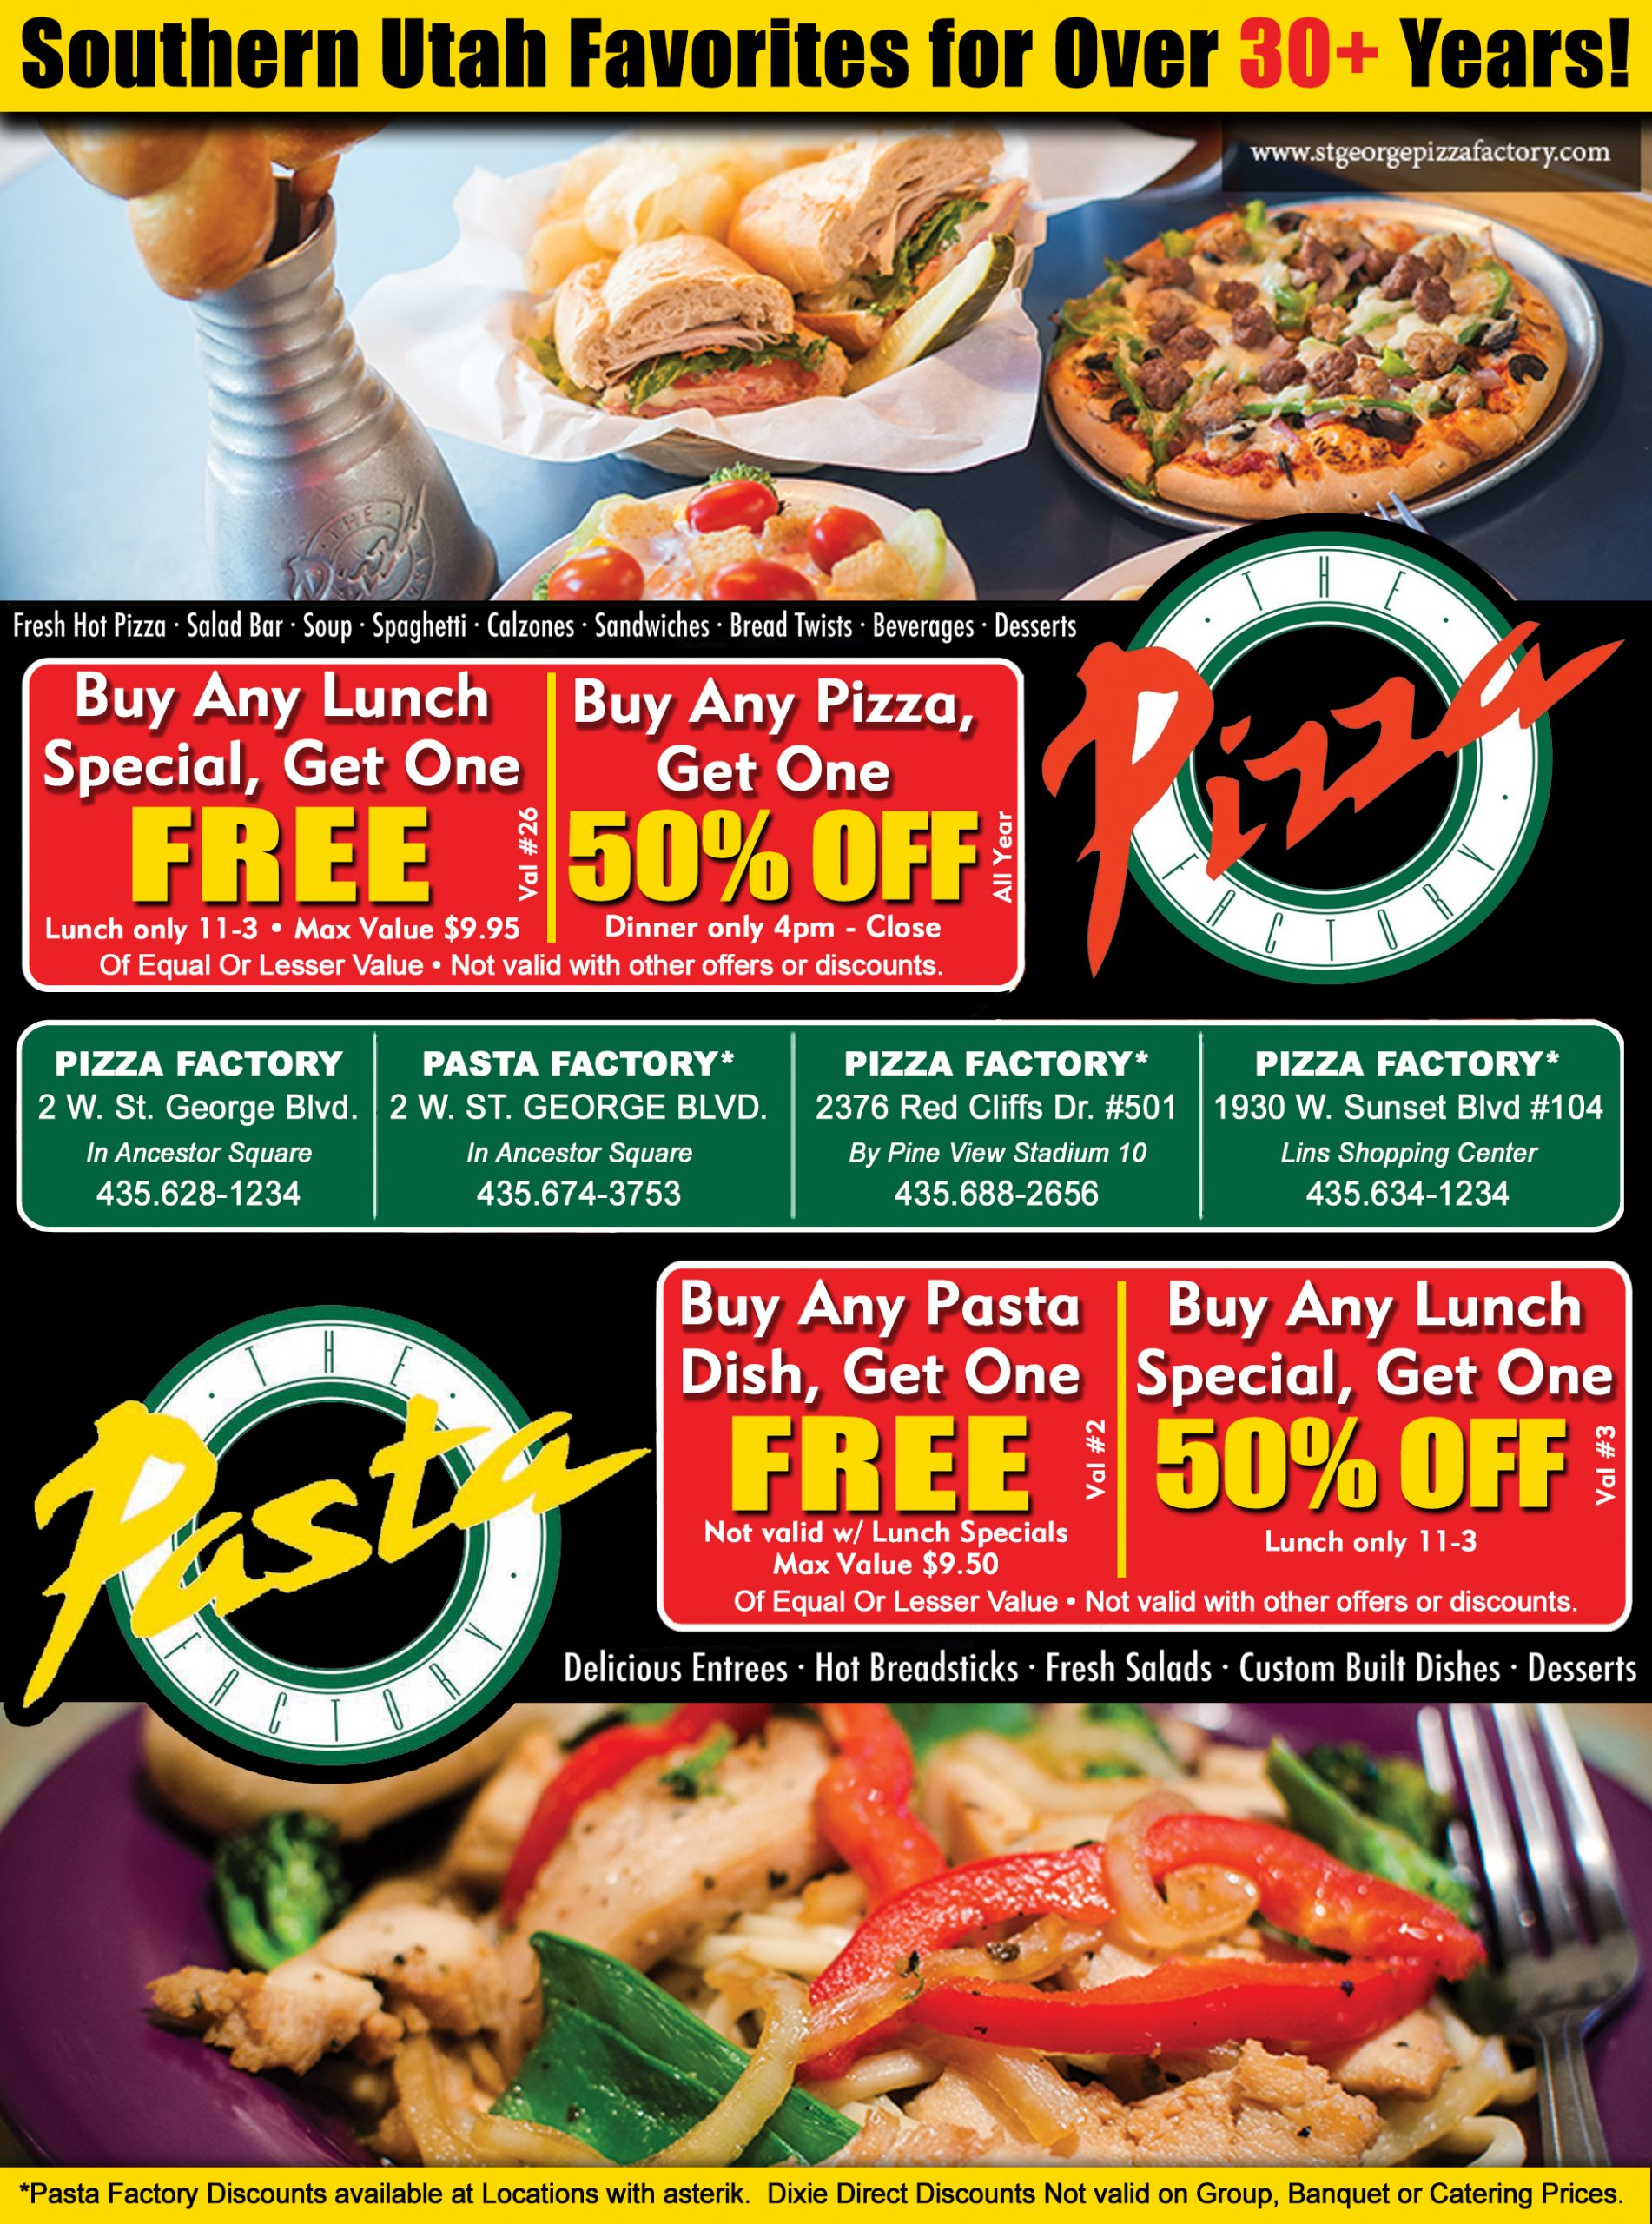 Pizza Factory - Dining, Take Out